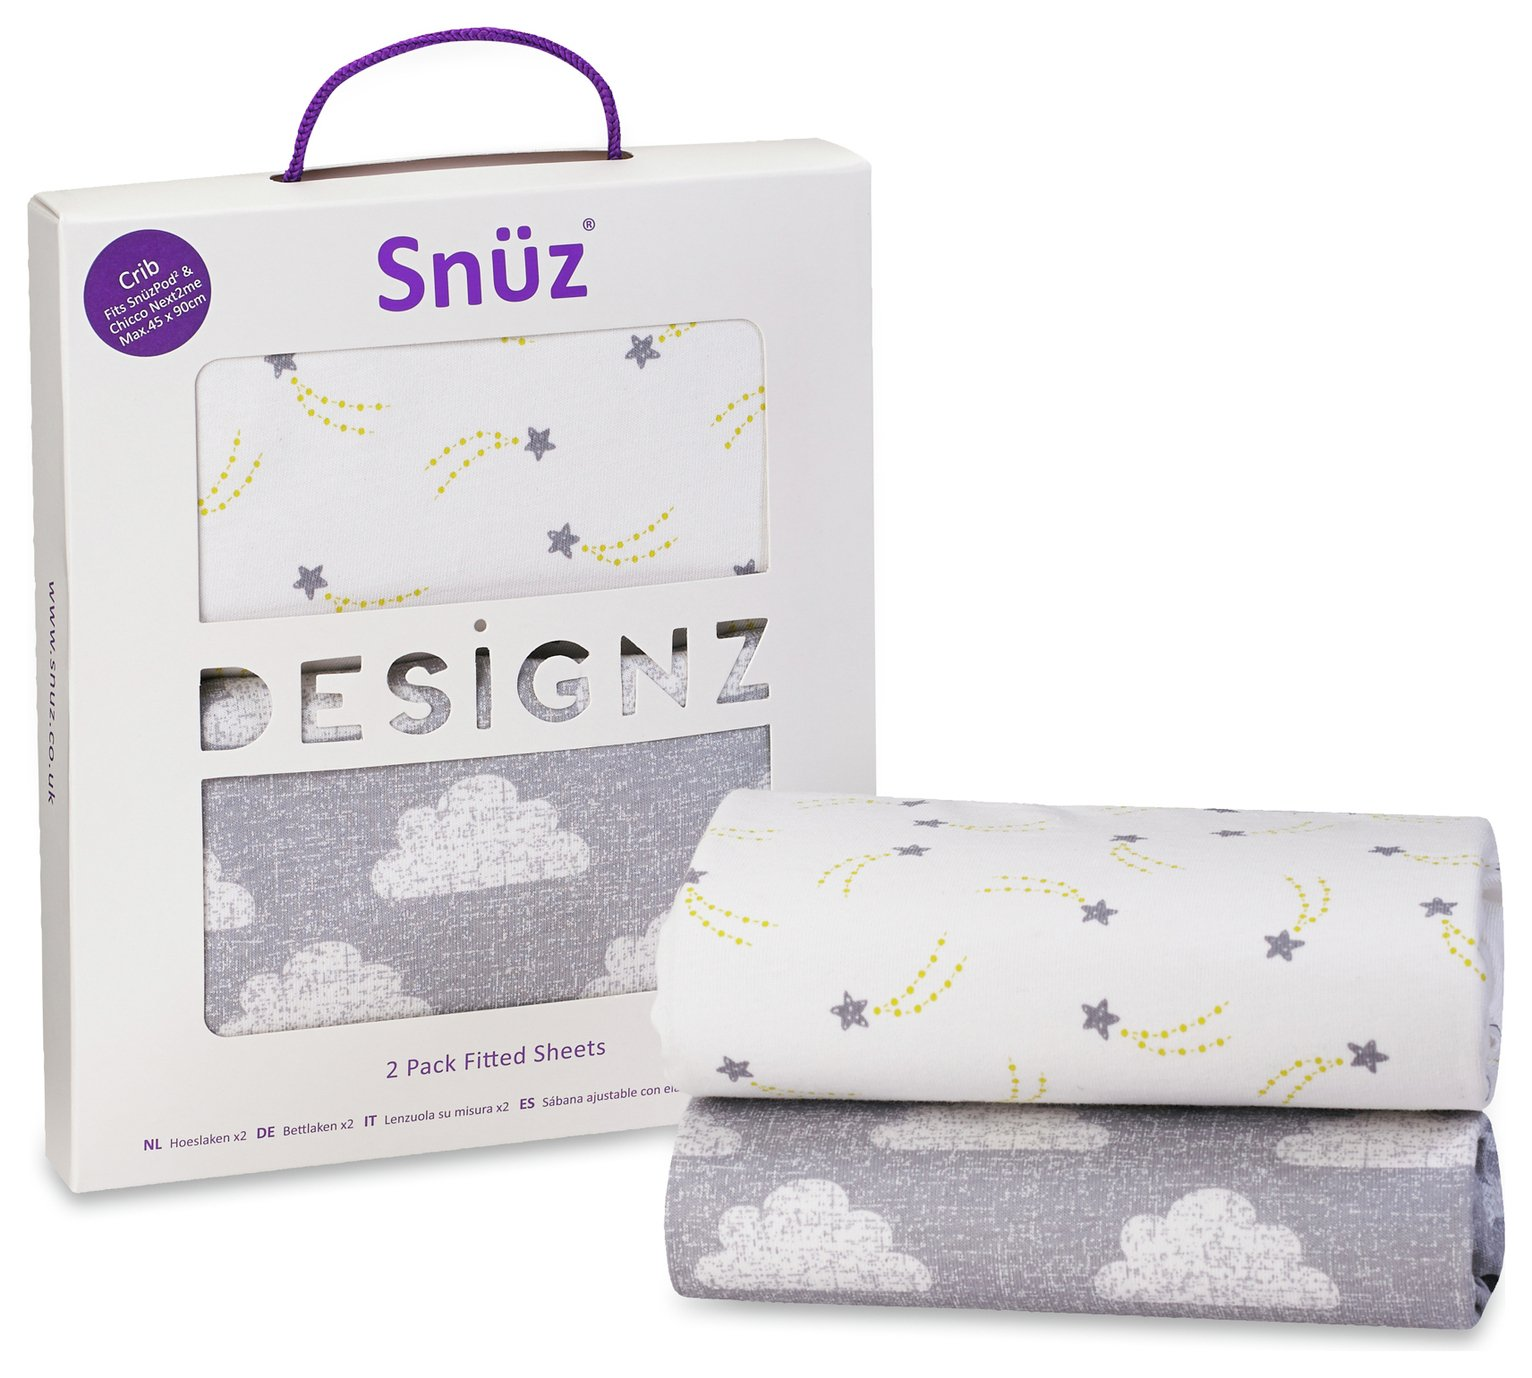 Snuz Crib 2 Pack of Fitted Sheets - Cloud 9